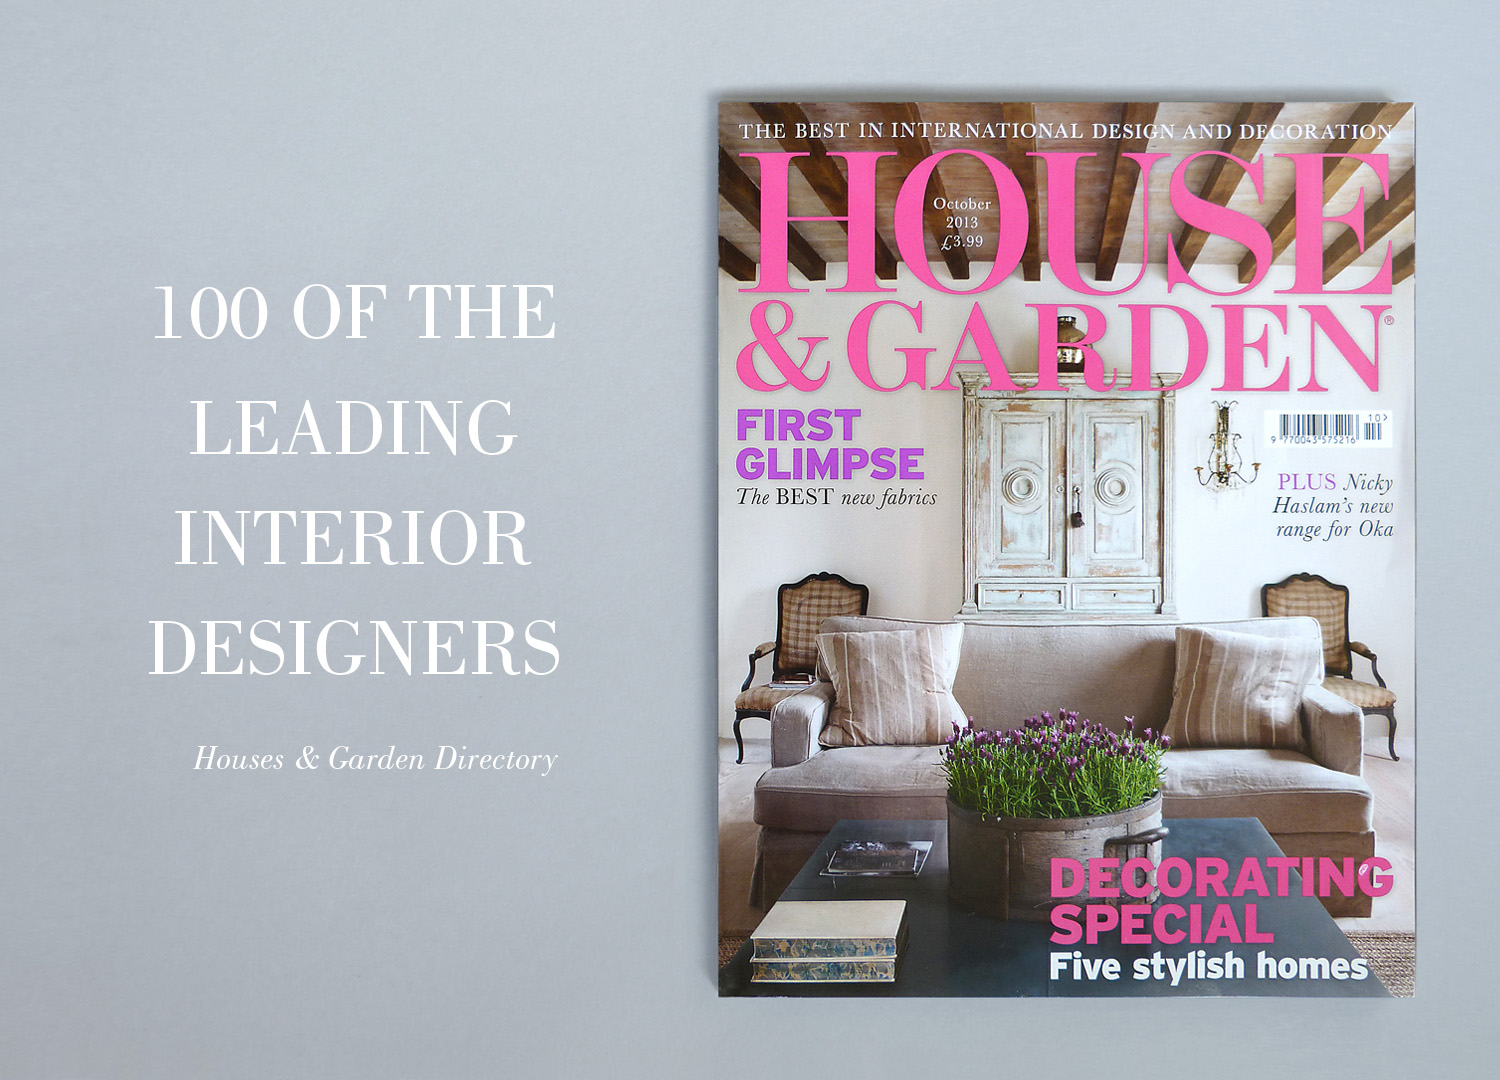 FEATURED IN HOUSE   GARDEN TOP 100 INTERIOR DESIGNERS     MARION LICHTIG